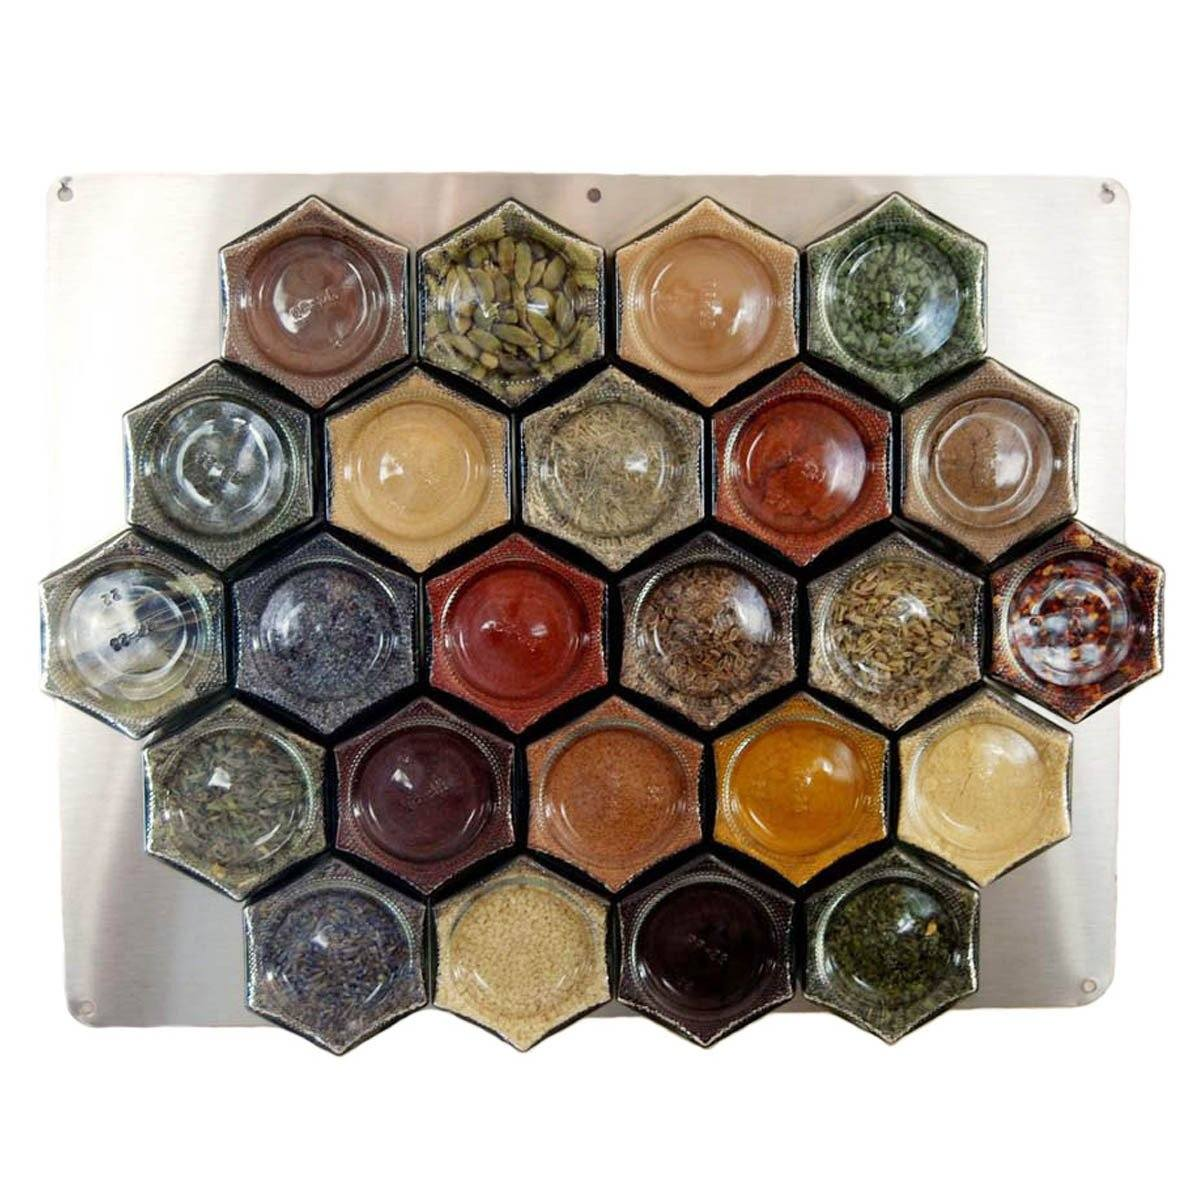 Diy magnetic spice rack for wall 24 large empty jars gneiss spice